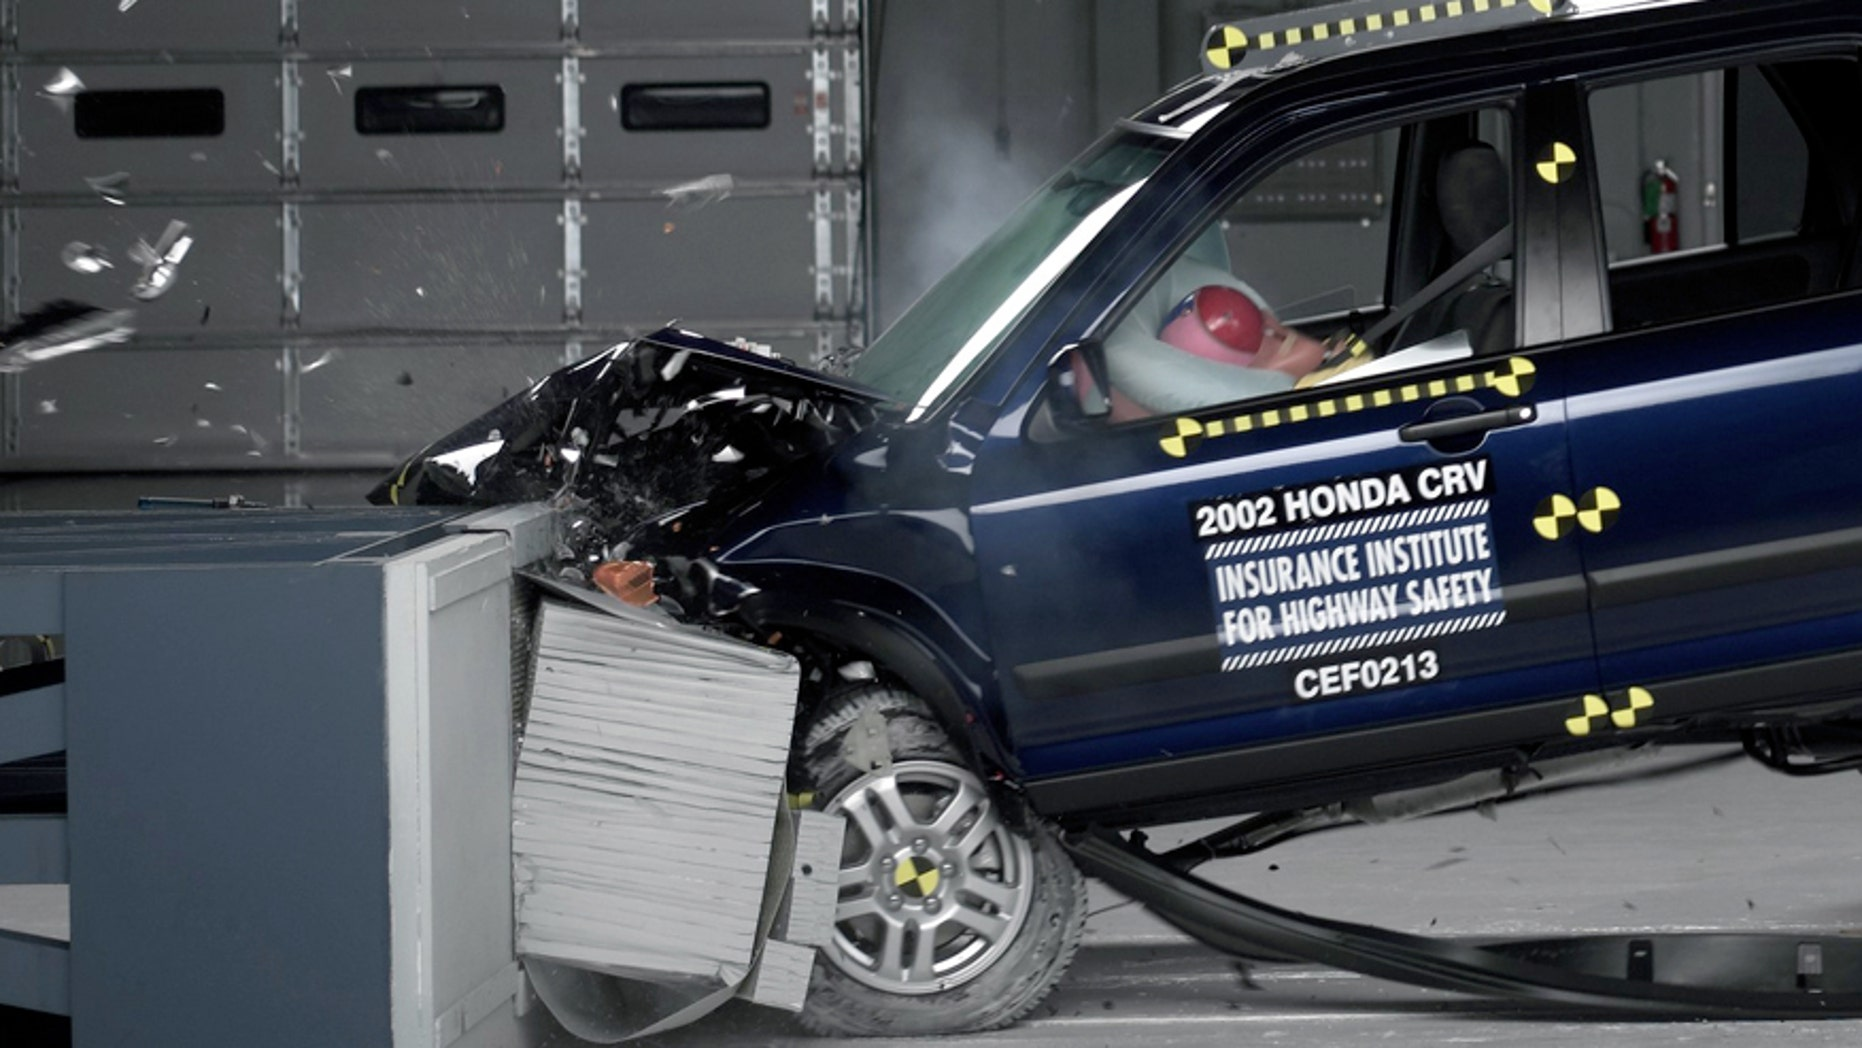 This undated photo provided by the Insurance Institute for Highway Safety shows a crash test of a 2002 Honda CR-V, one of the models subject to a recall to repair faulty air bags. In a letter delivered Thursday, Oct. 23, 2014, U.S. Senators Richard Blumenthal, D-Conn., and Ed Markey, D-Mass., are calling on regulators to issue a nationwide recall of cars with faulty air bags made by Takata Corp., questioning why automakers have been allowed to limit recalls to only certain locations with high humidity. (AP Photo/Insurance Institute for Highway Safety)